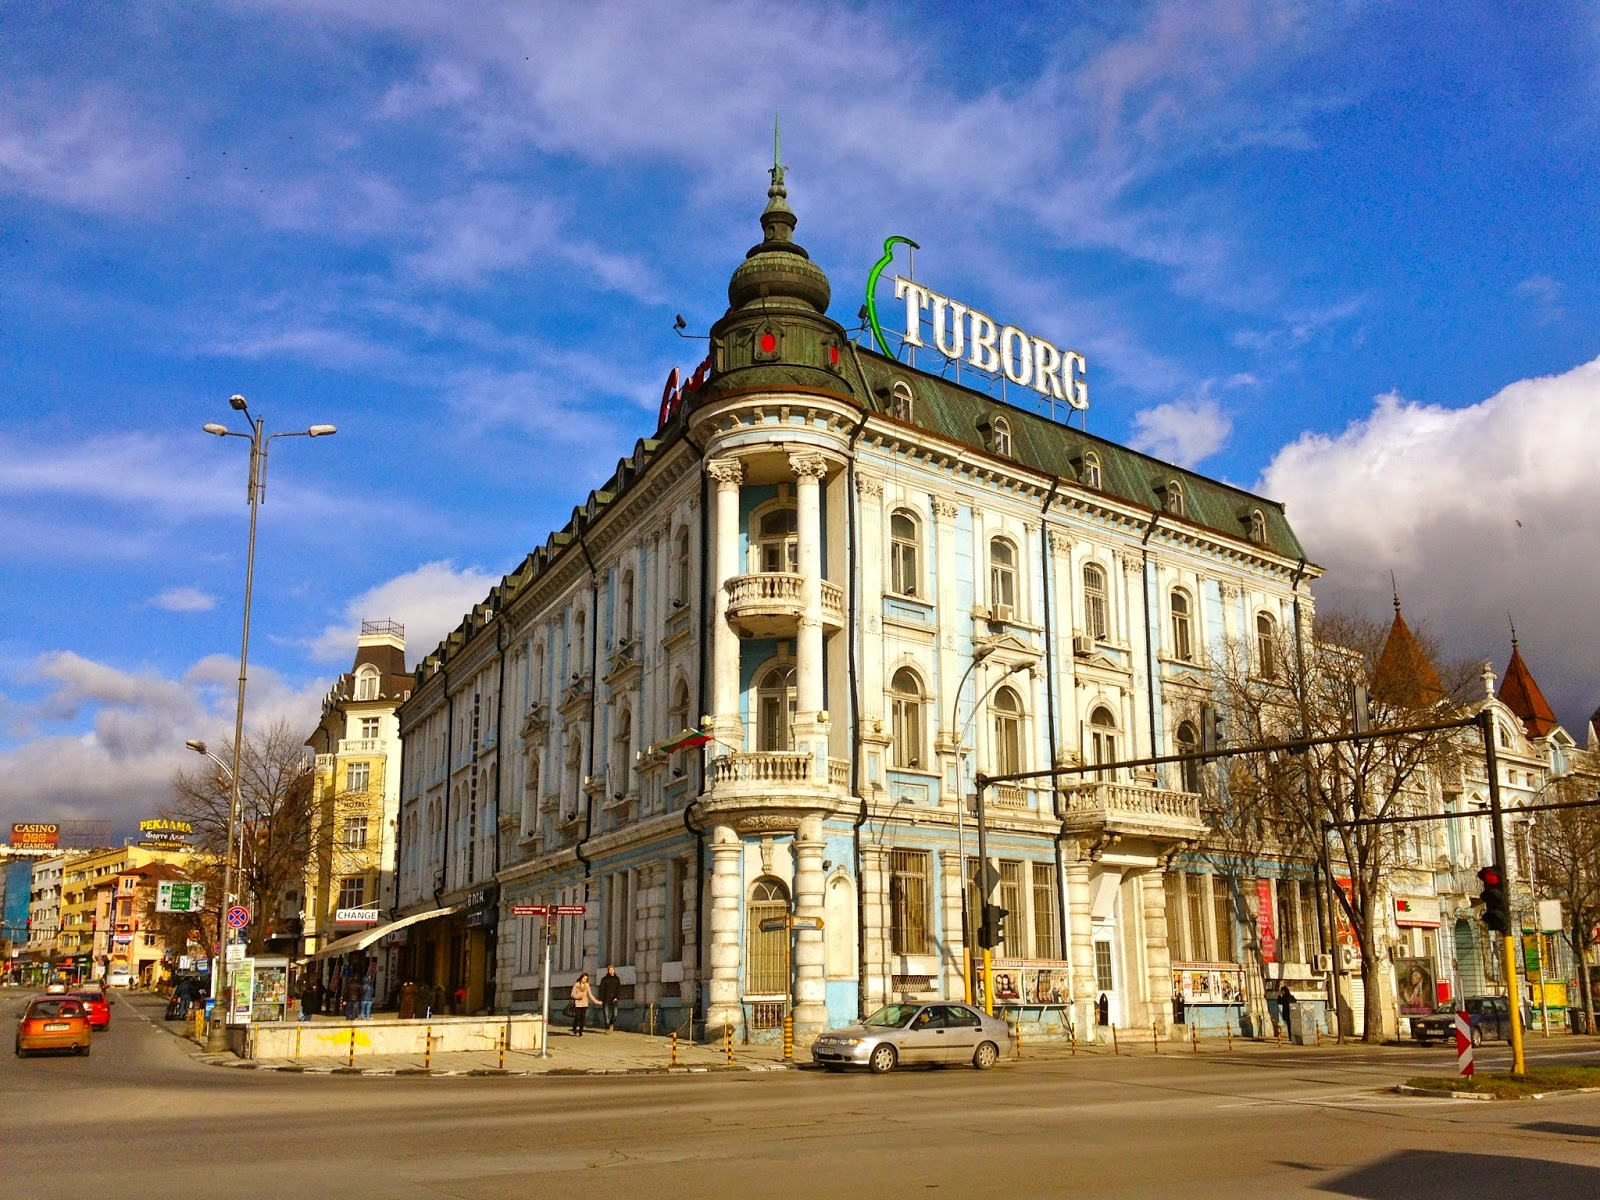 Photo of a street and building in Varna, Bulgaria.